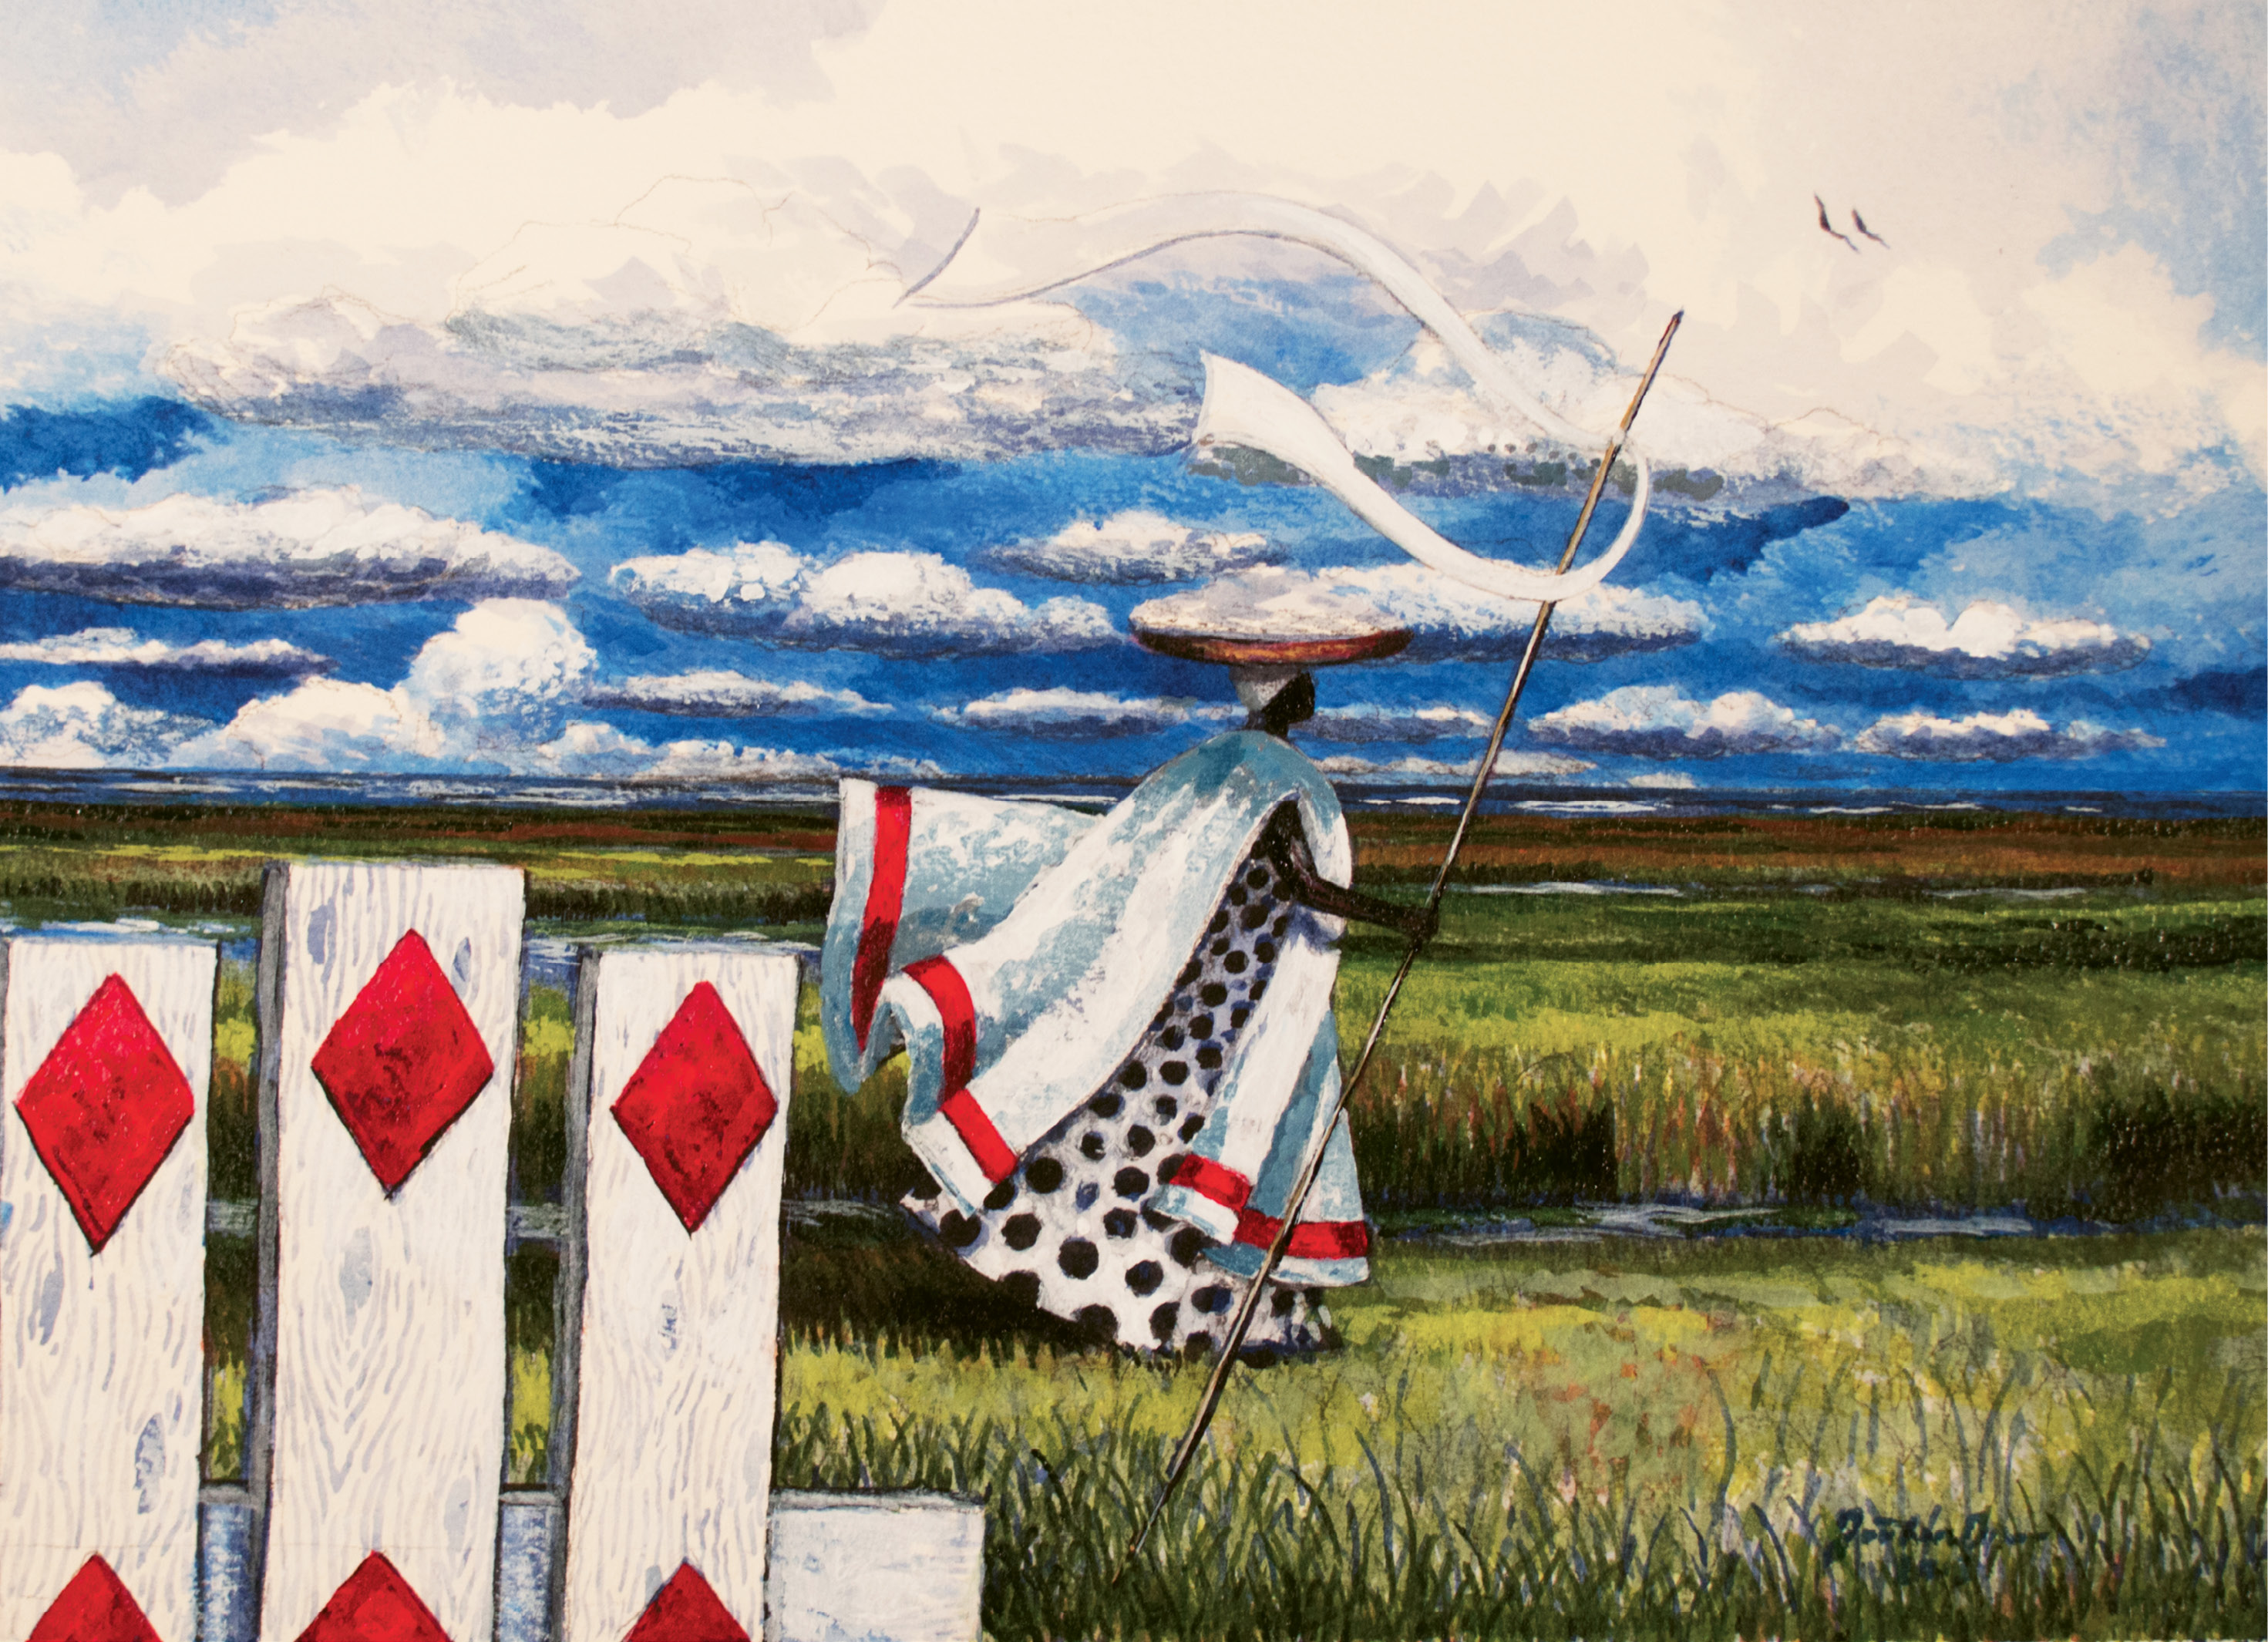 Strolling by a Sluice Gate (acrylic on watercolor, 11 X 14 1/2 inches, 2012)